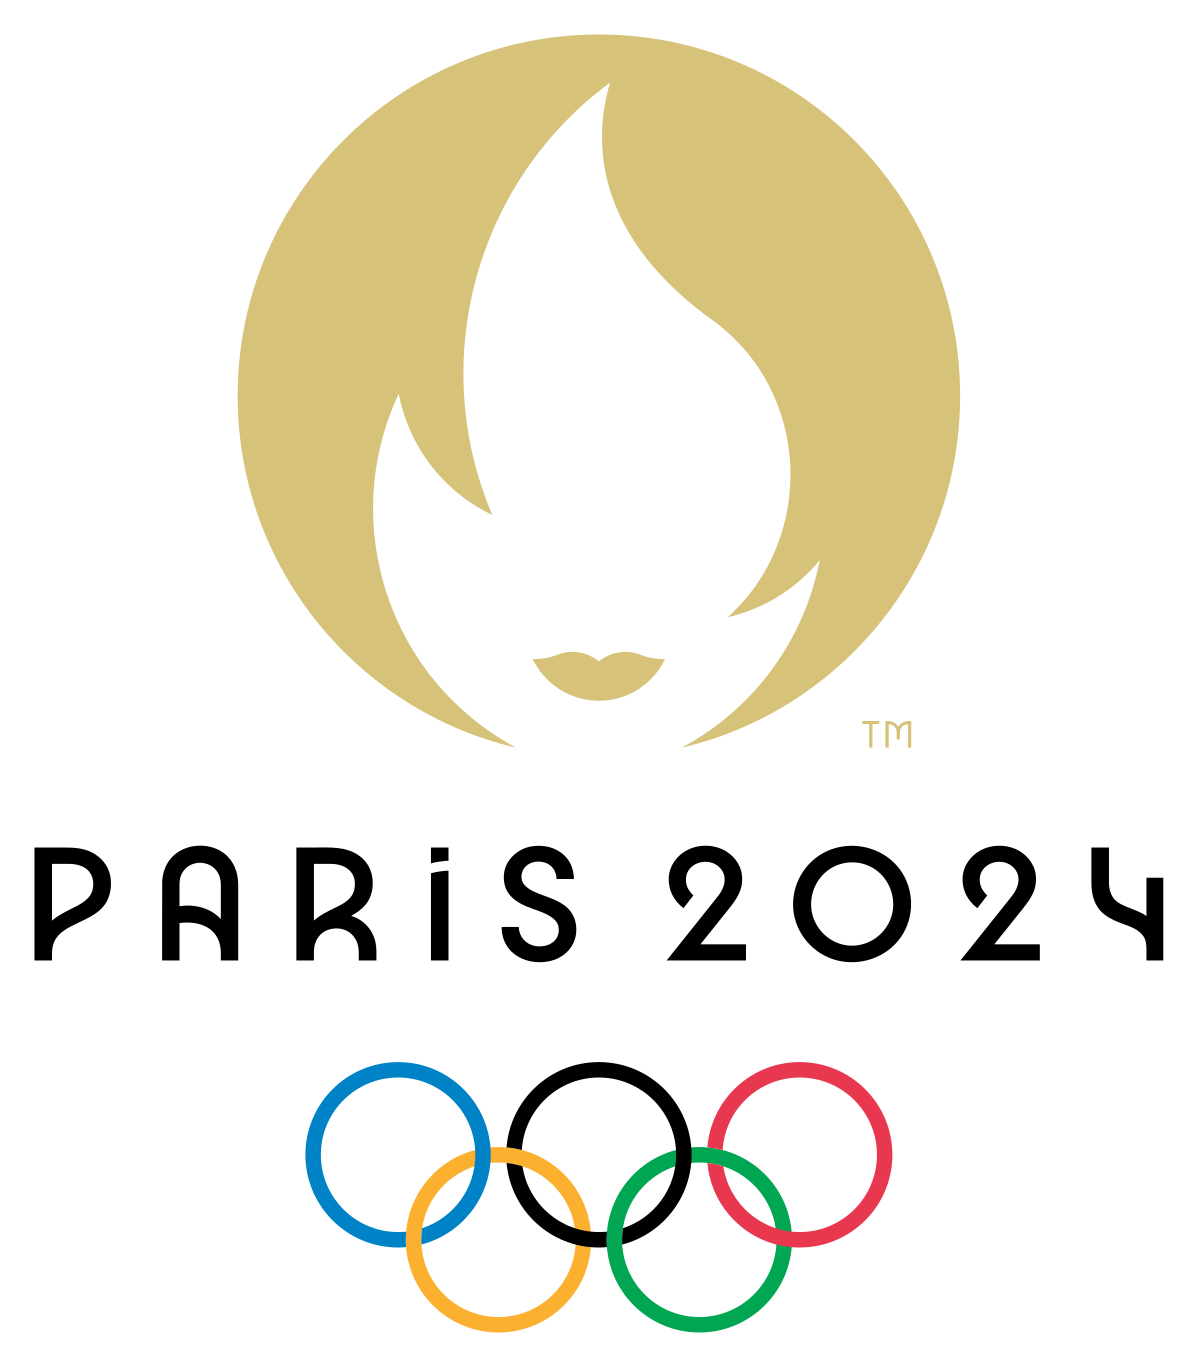 What We Already Know About the 2024 Olympics